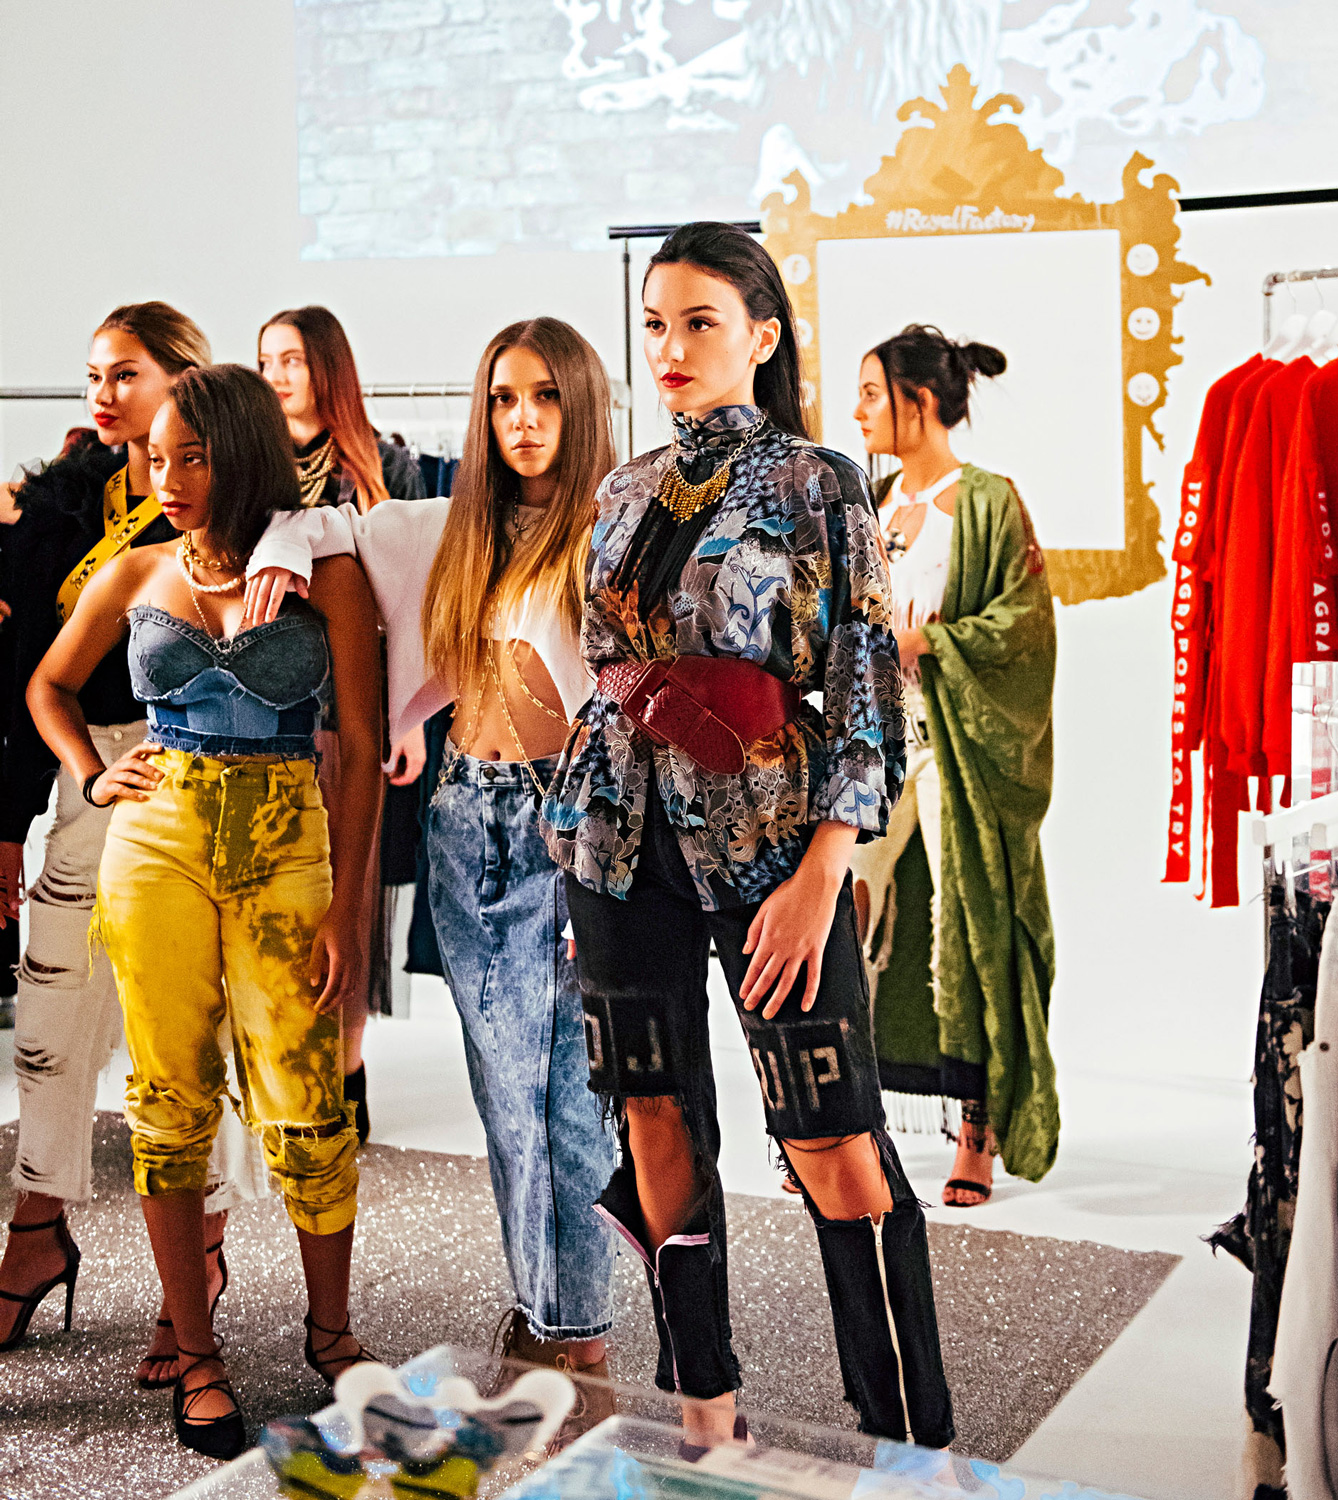 Fashion Week's Art Behind Fashion